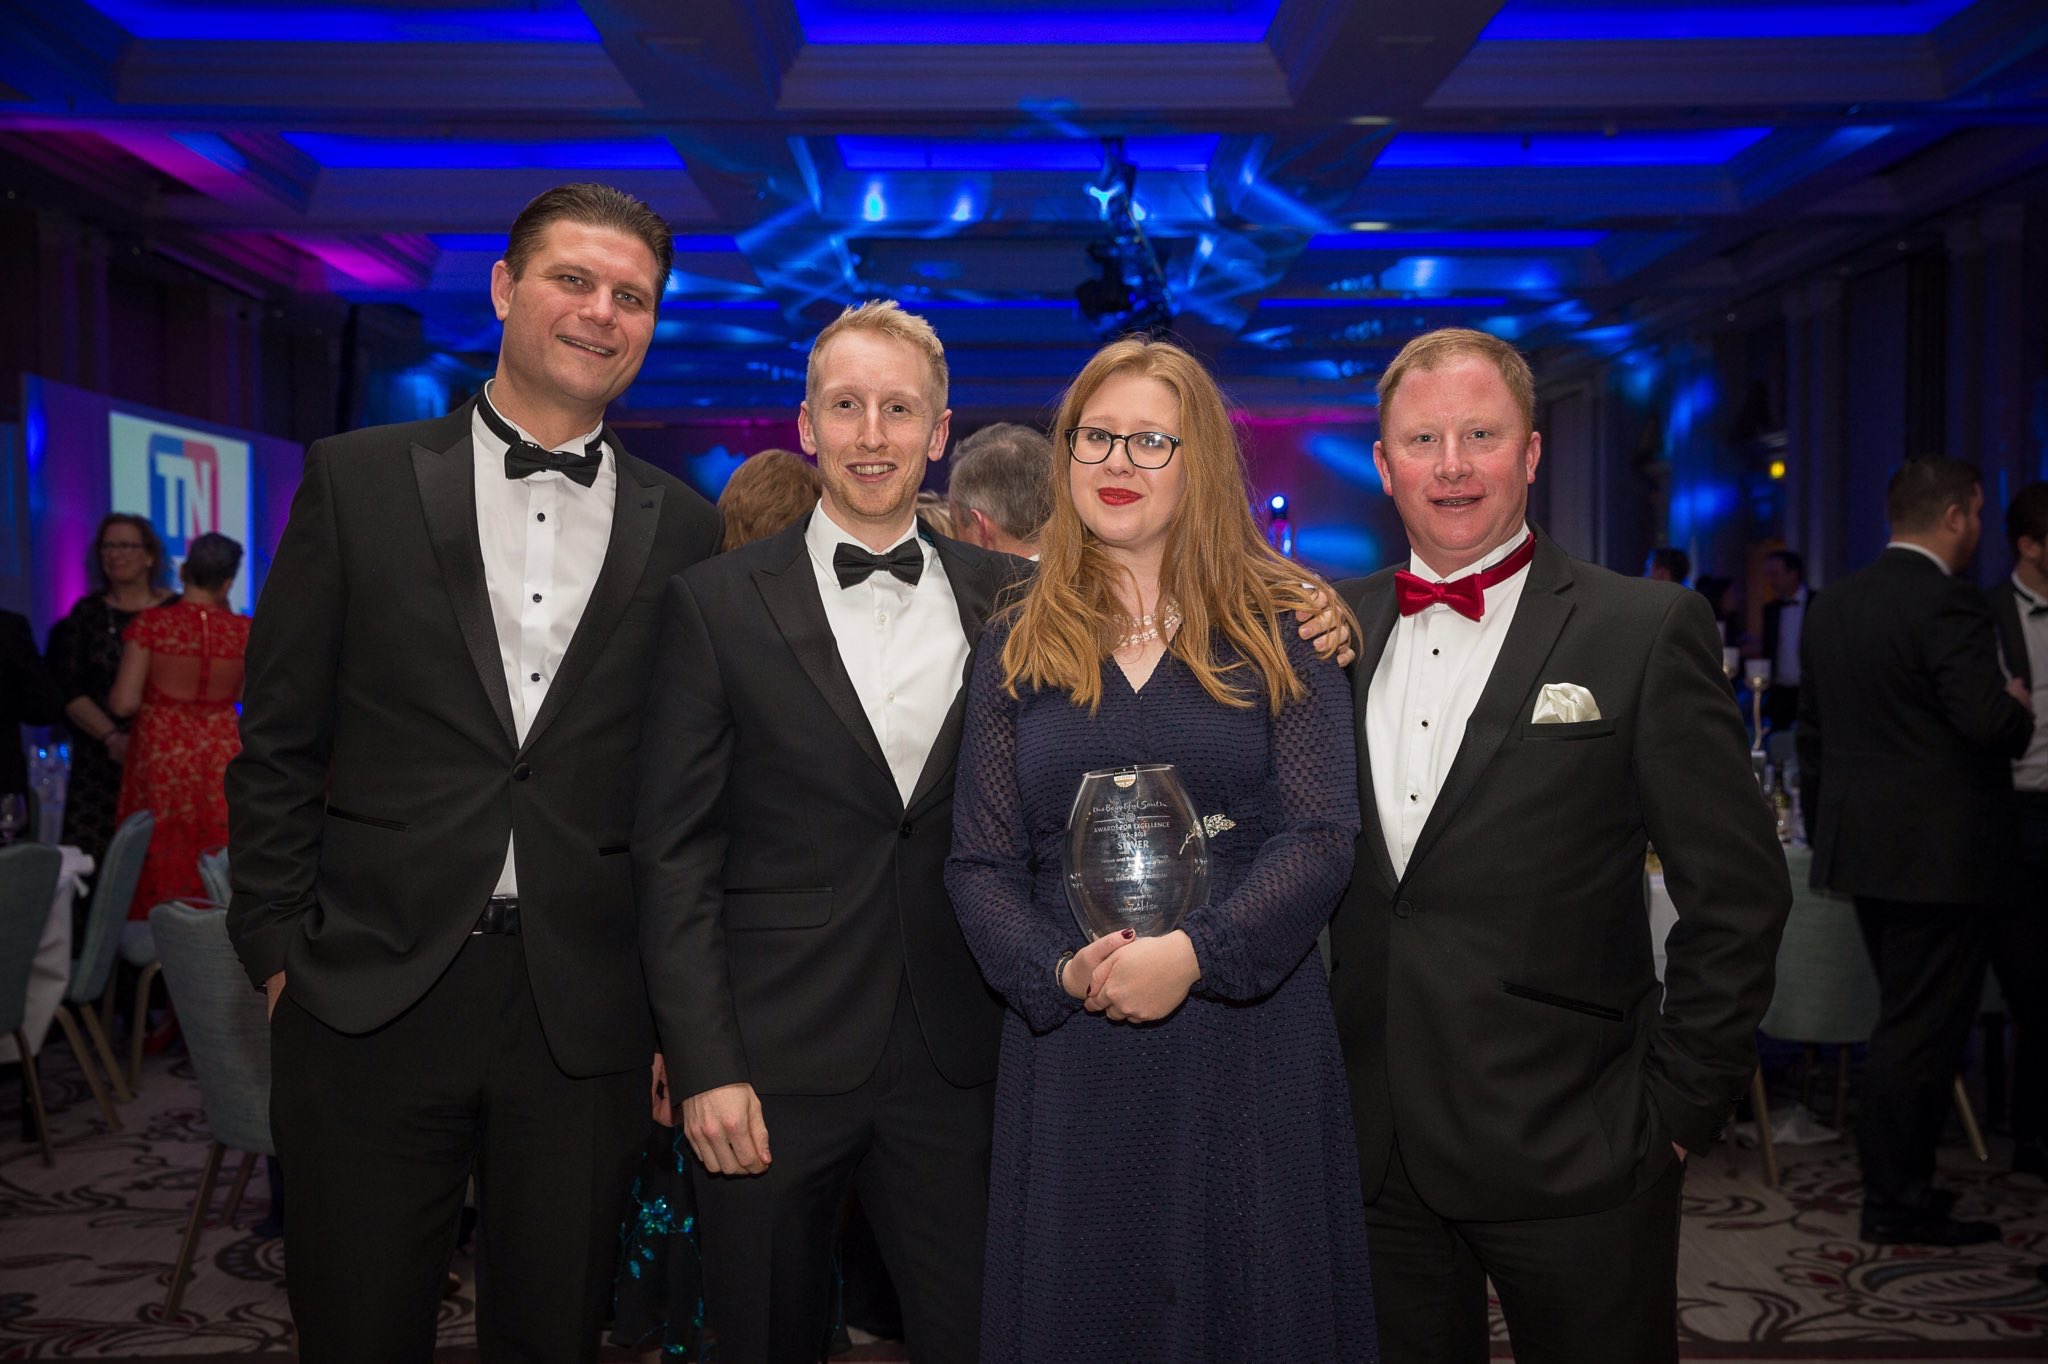 Graeme Patfield of Polymedia (left) with the Mary Rose events team at the Beautiful South Awards